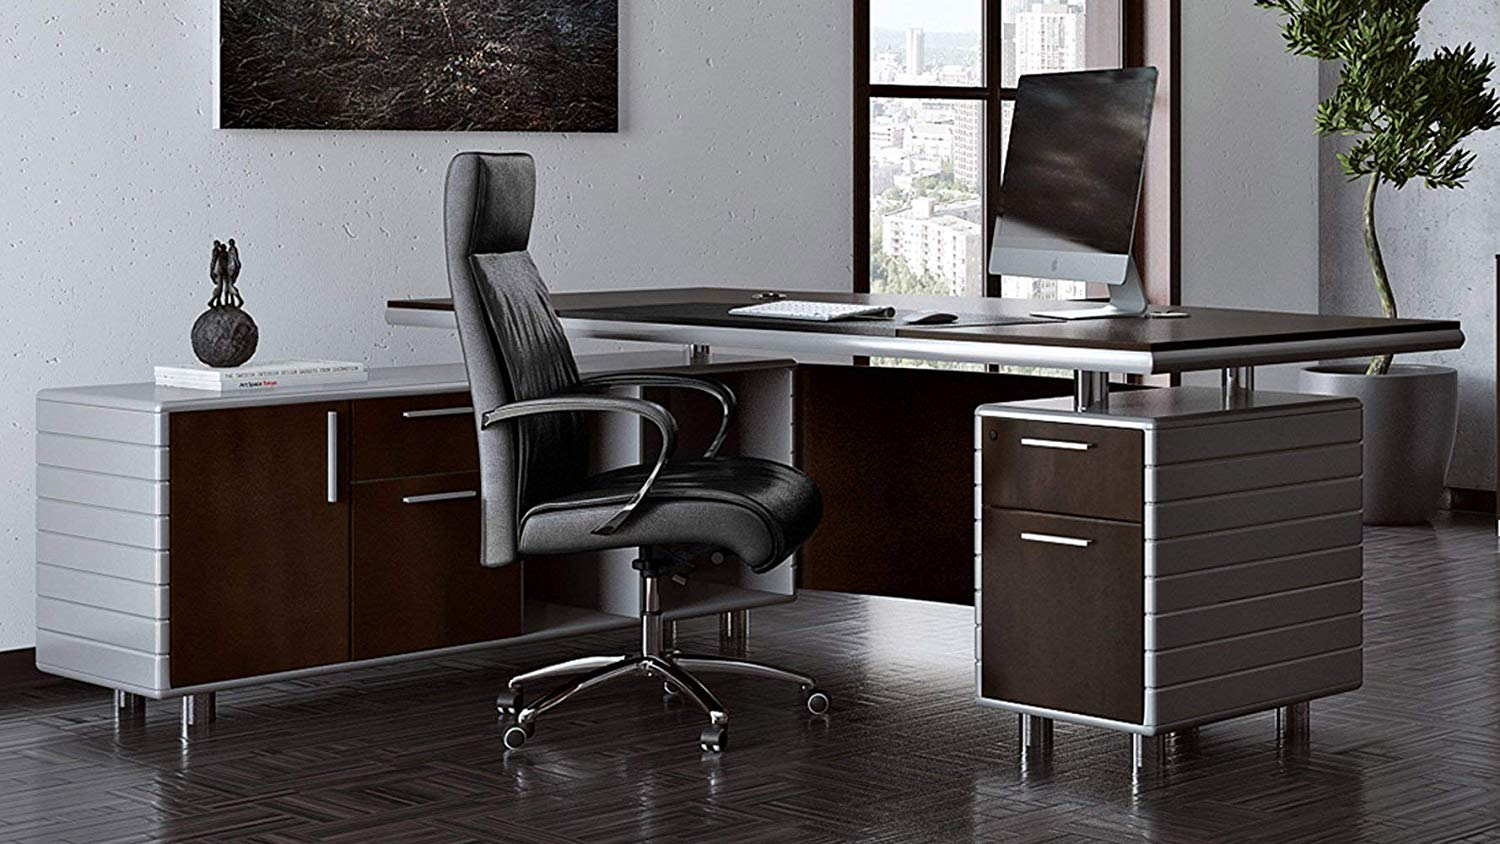 5 Executive Desks That The Internet Is Going Crazy About Home